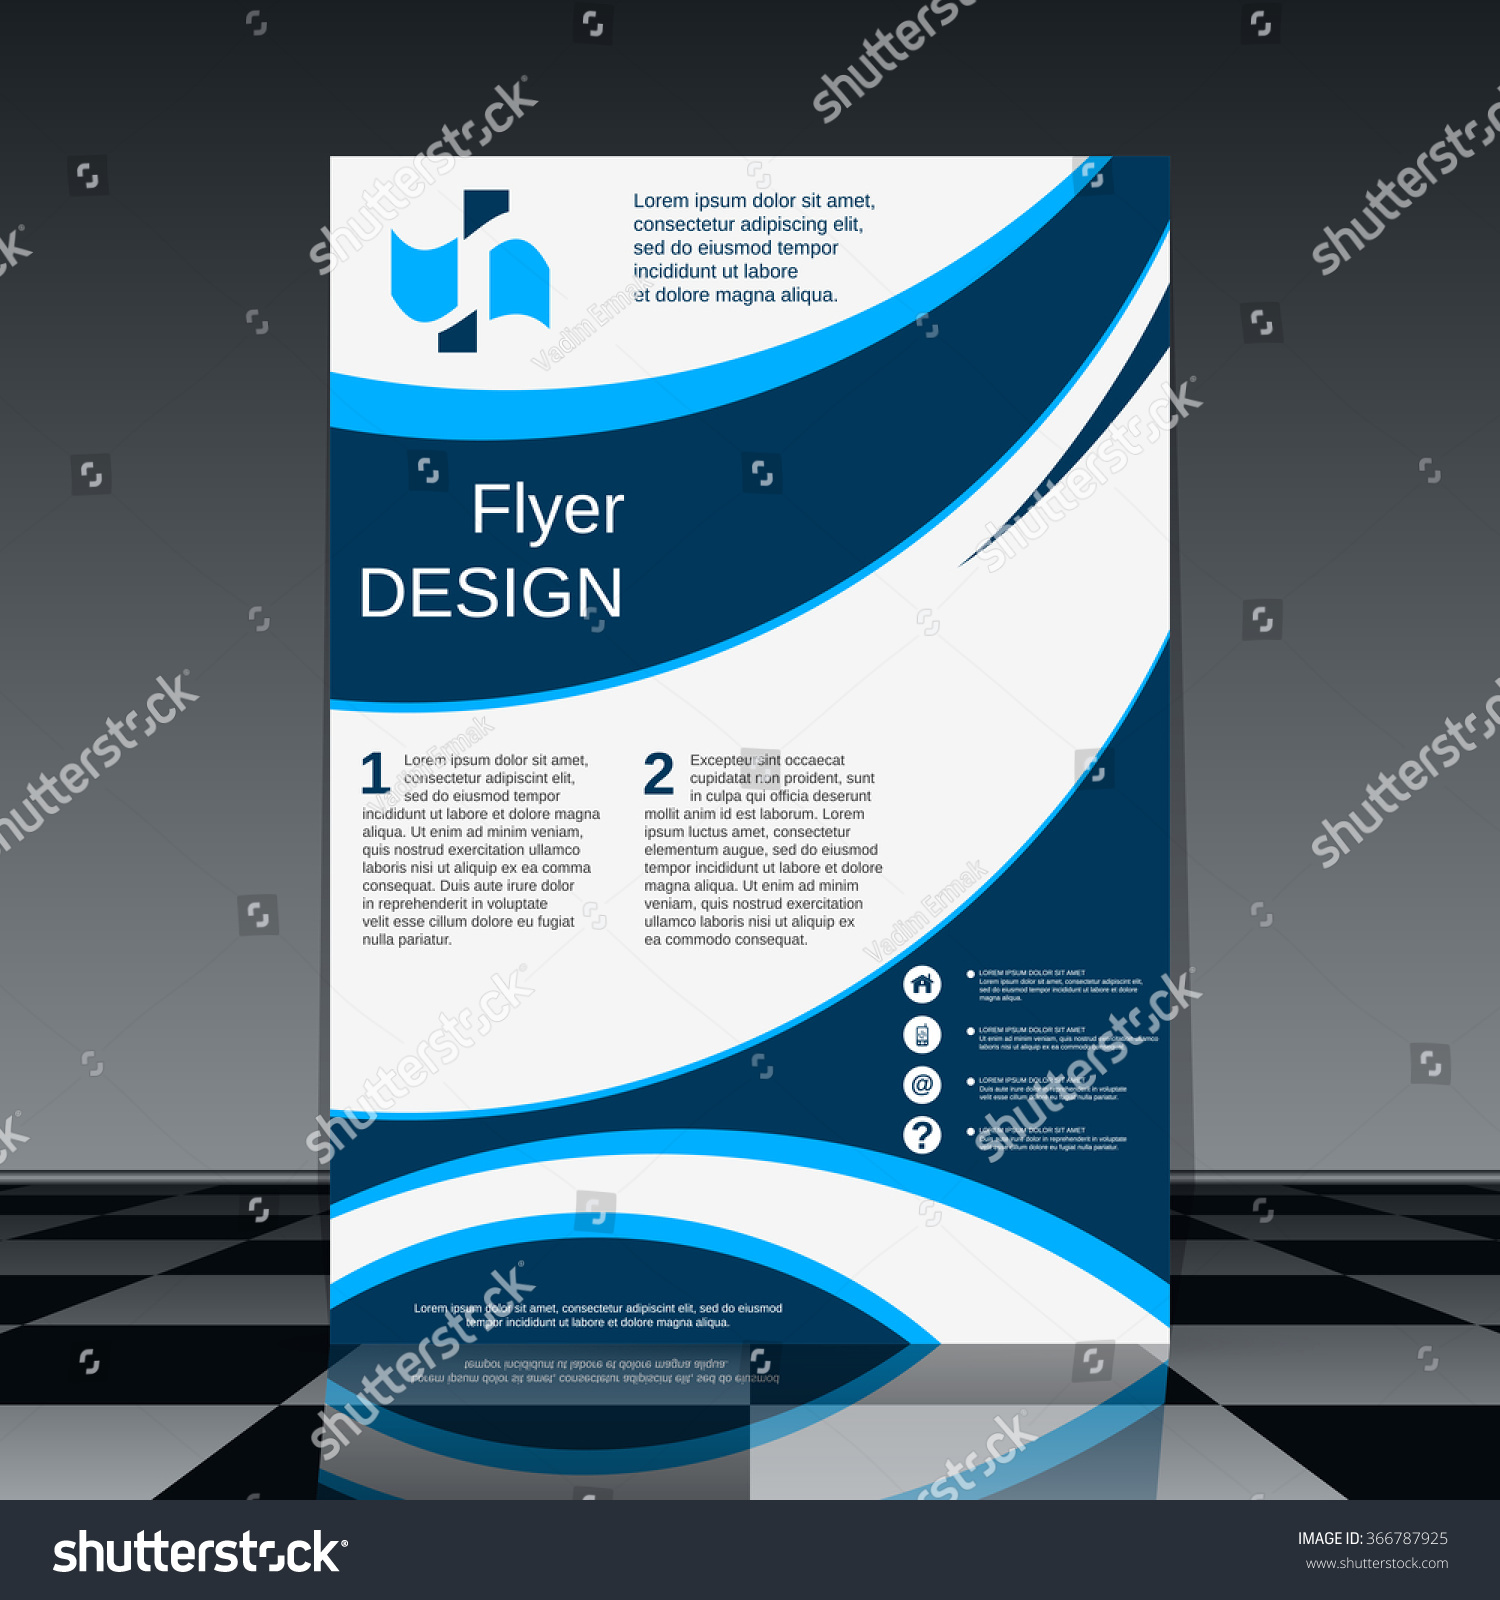 royalty professional flyer vector template 366787925 stock professional flyer vector template brochure mockup business report magazine cover placard corporate banner presentation poster design stock vector